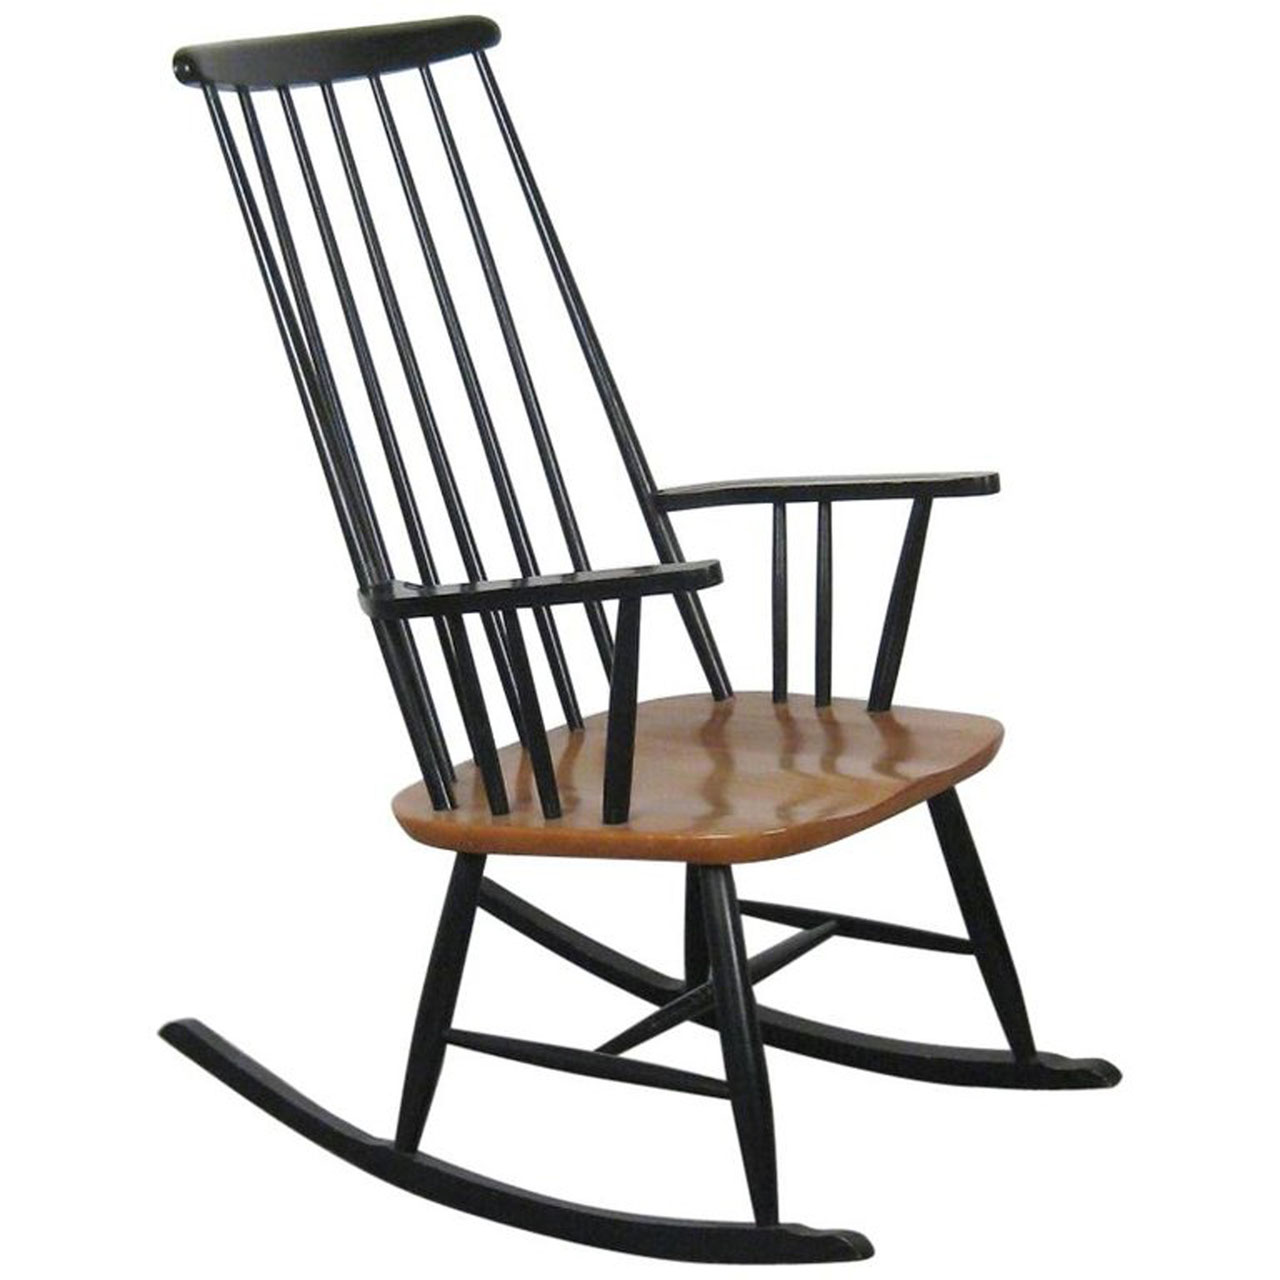 Groovy Rocking Chair By Ilmari Tapiovaara For Asko 1950S Alphanode Cool Chair Designs And Ideas Alphanodeonline